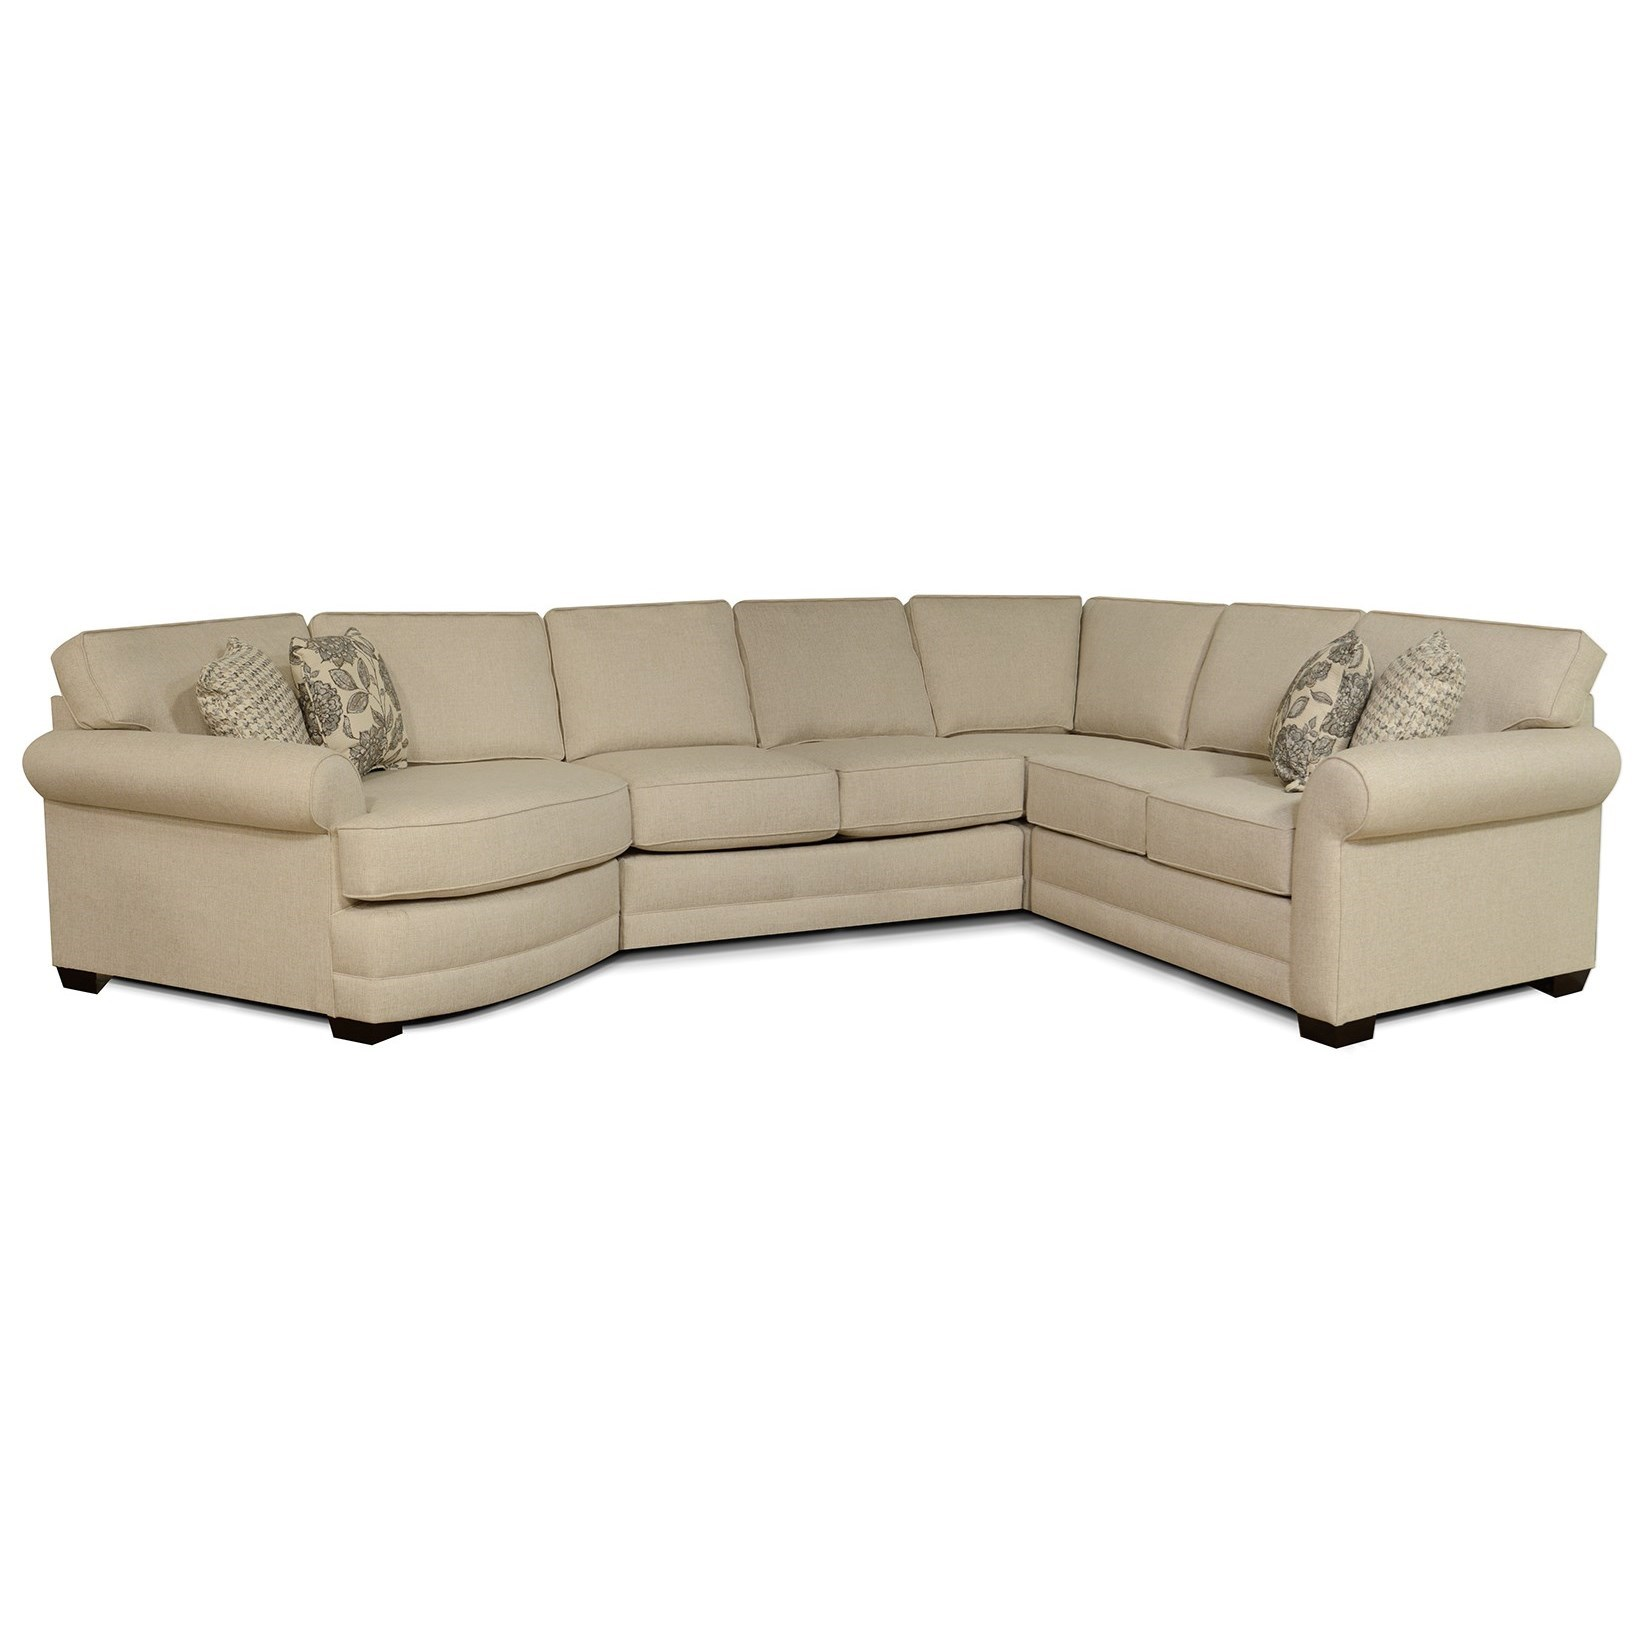 V560 4 Piece Sectional by Alexvale at Turk Furniture